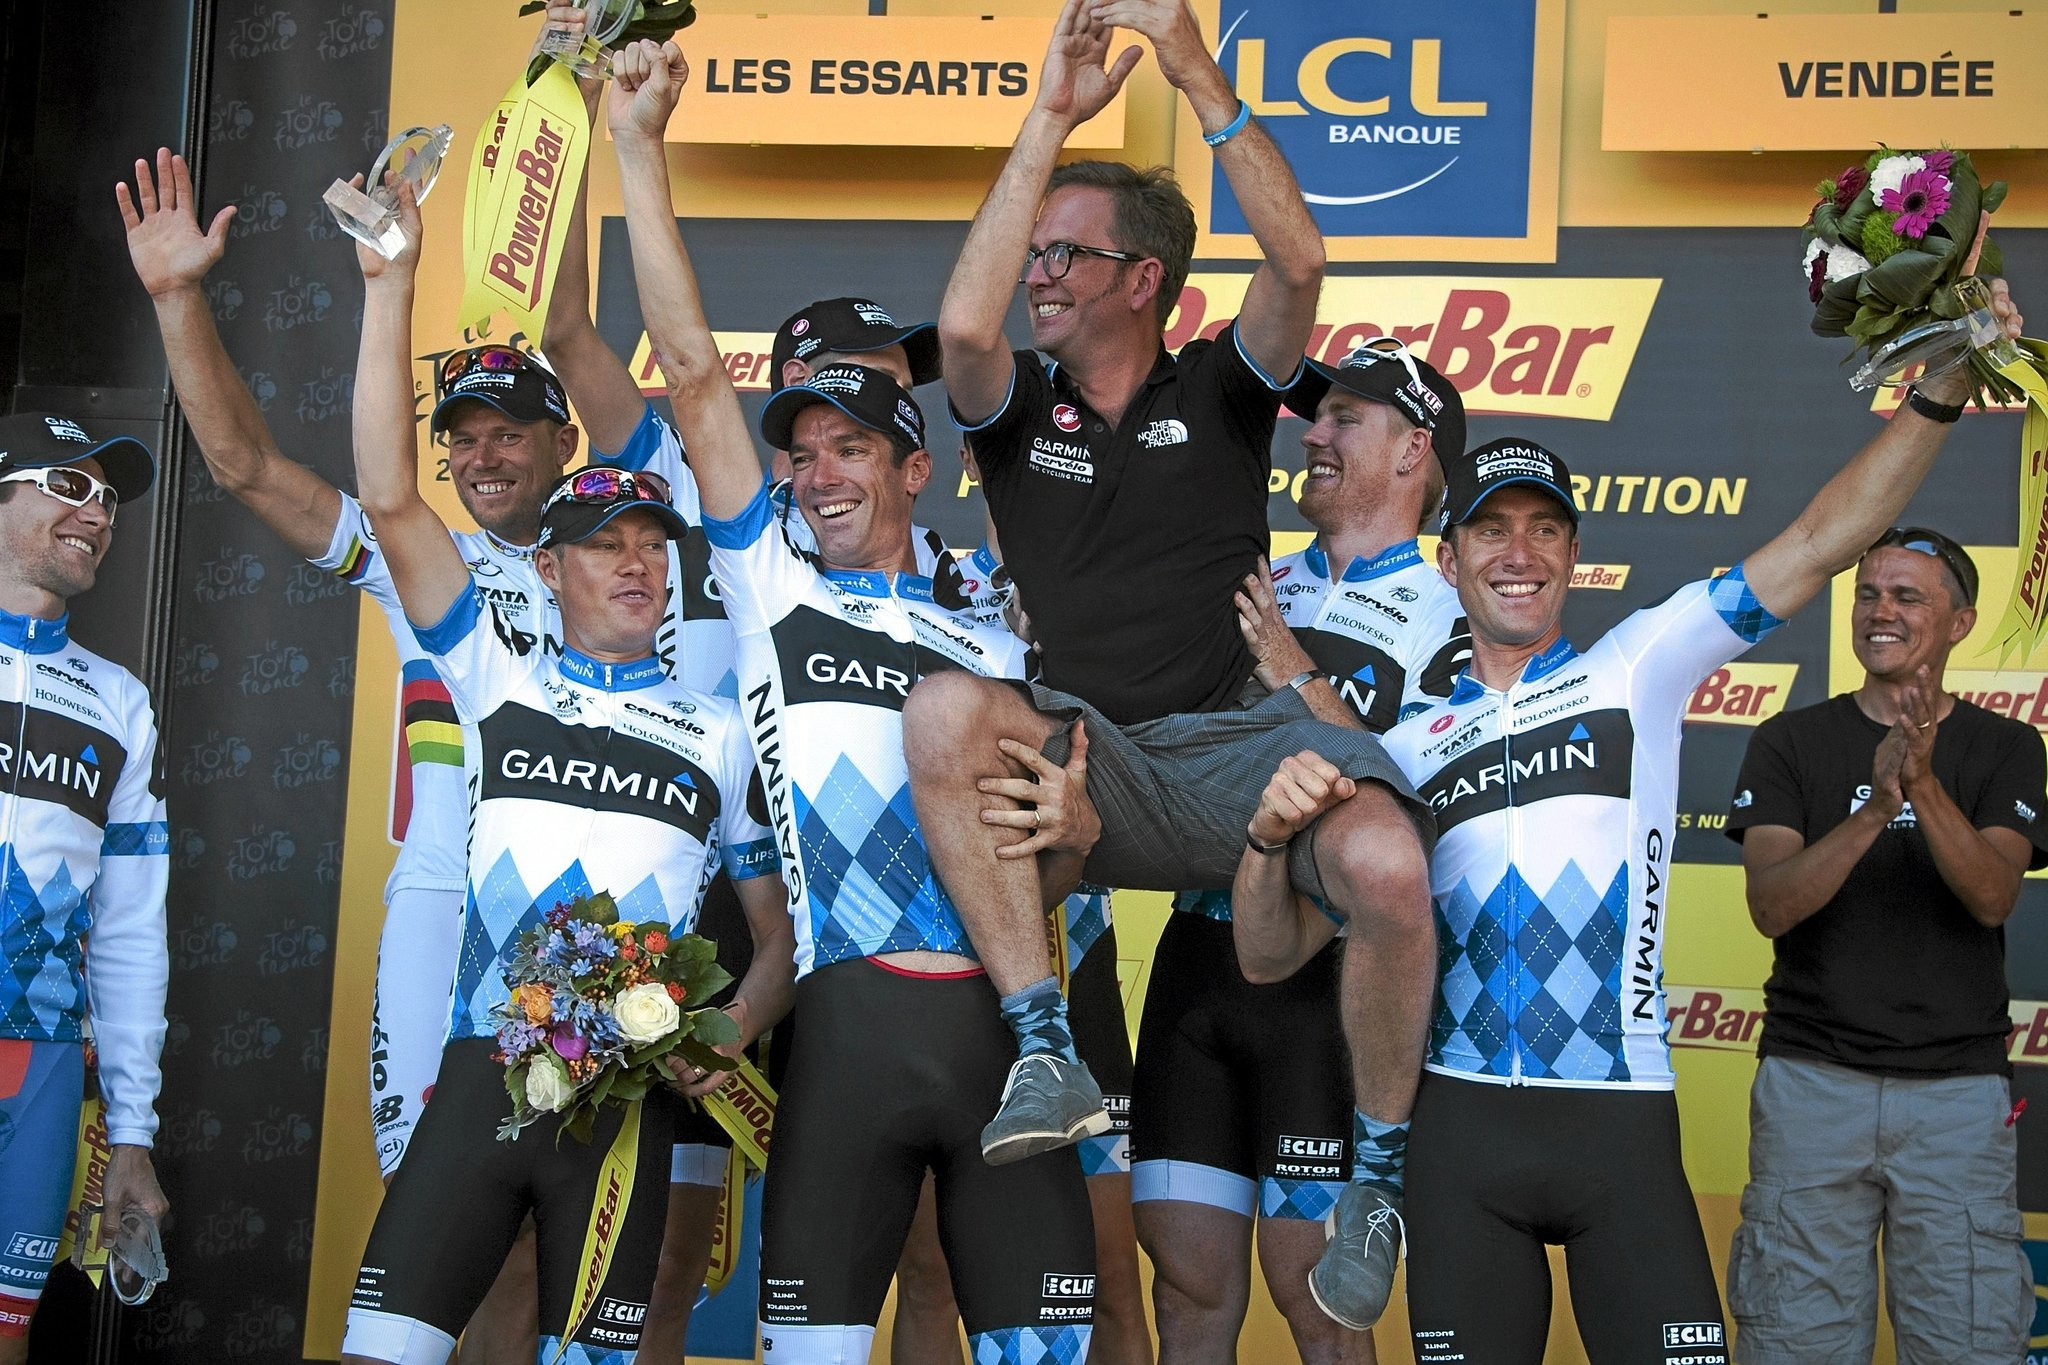 New Yellow jersey of Overall leader, Norwegias Thor Hushovd (2ndL), poses with teammates to celebrate the best team podium as they carry their sport director Jonathan lt;HIT gt;Vaughters lt;/HIT gt;, after winning the 23 km team time-trial and second stage of the 2011 Tour de France cycling race run around Les Essarts, western France, on July 3, 2011. AFP PHOTO / PASCAL PAVANI